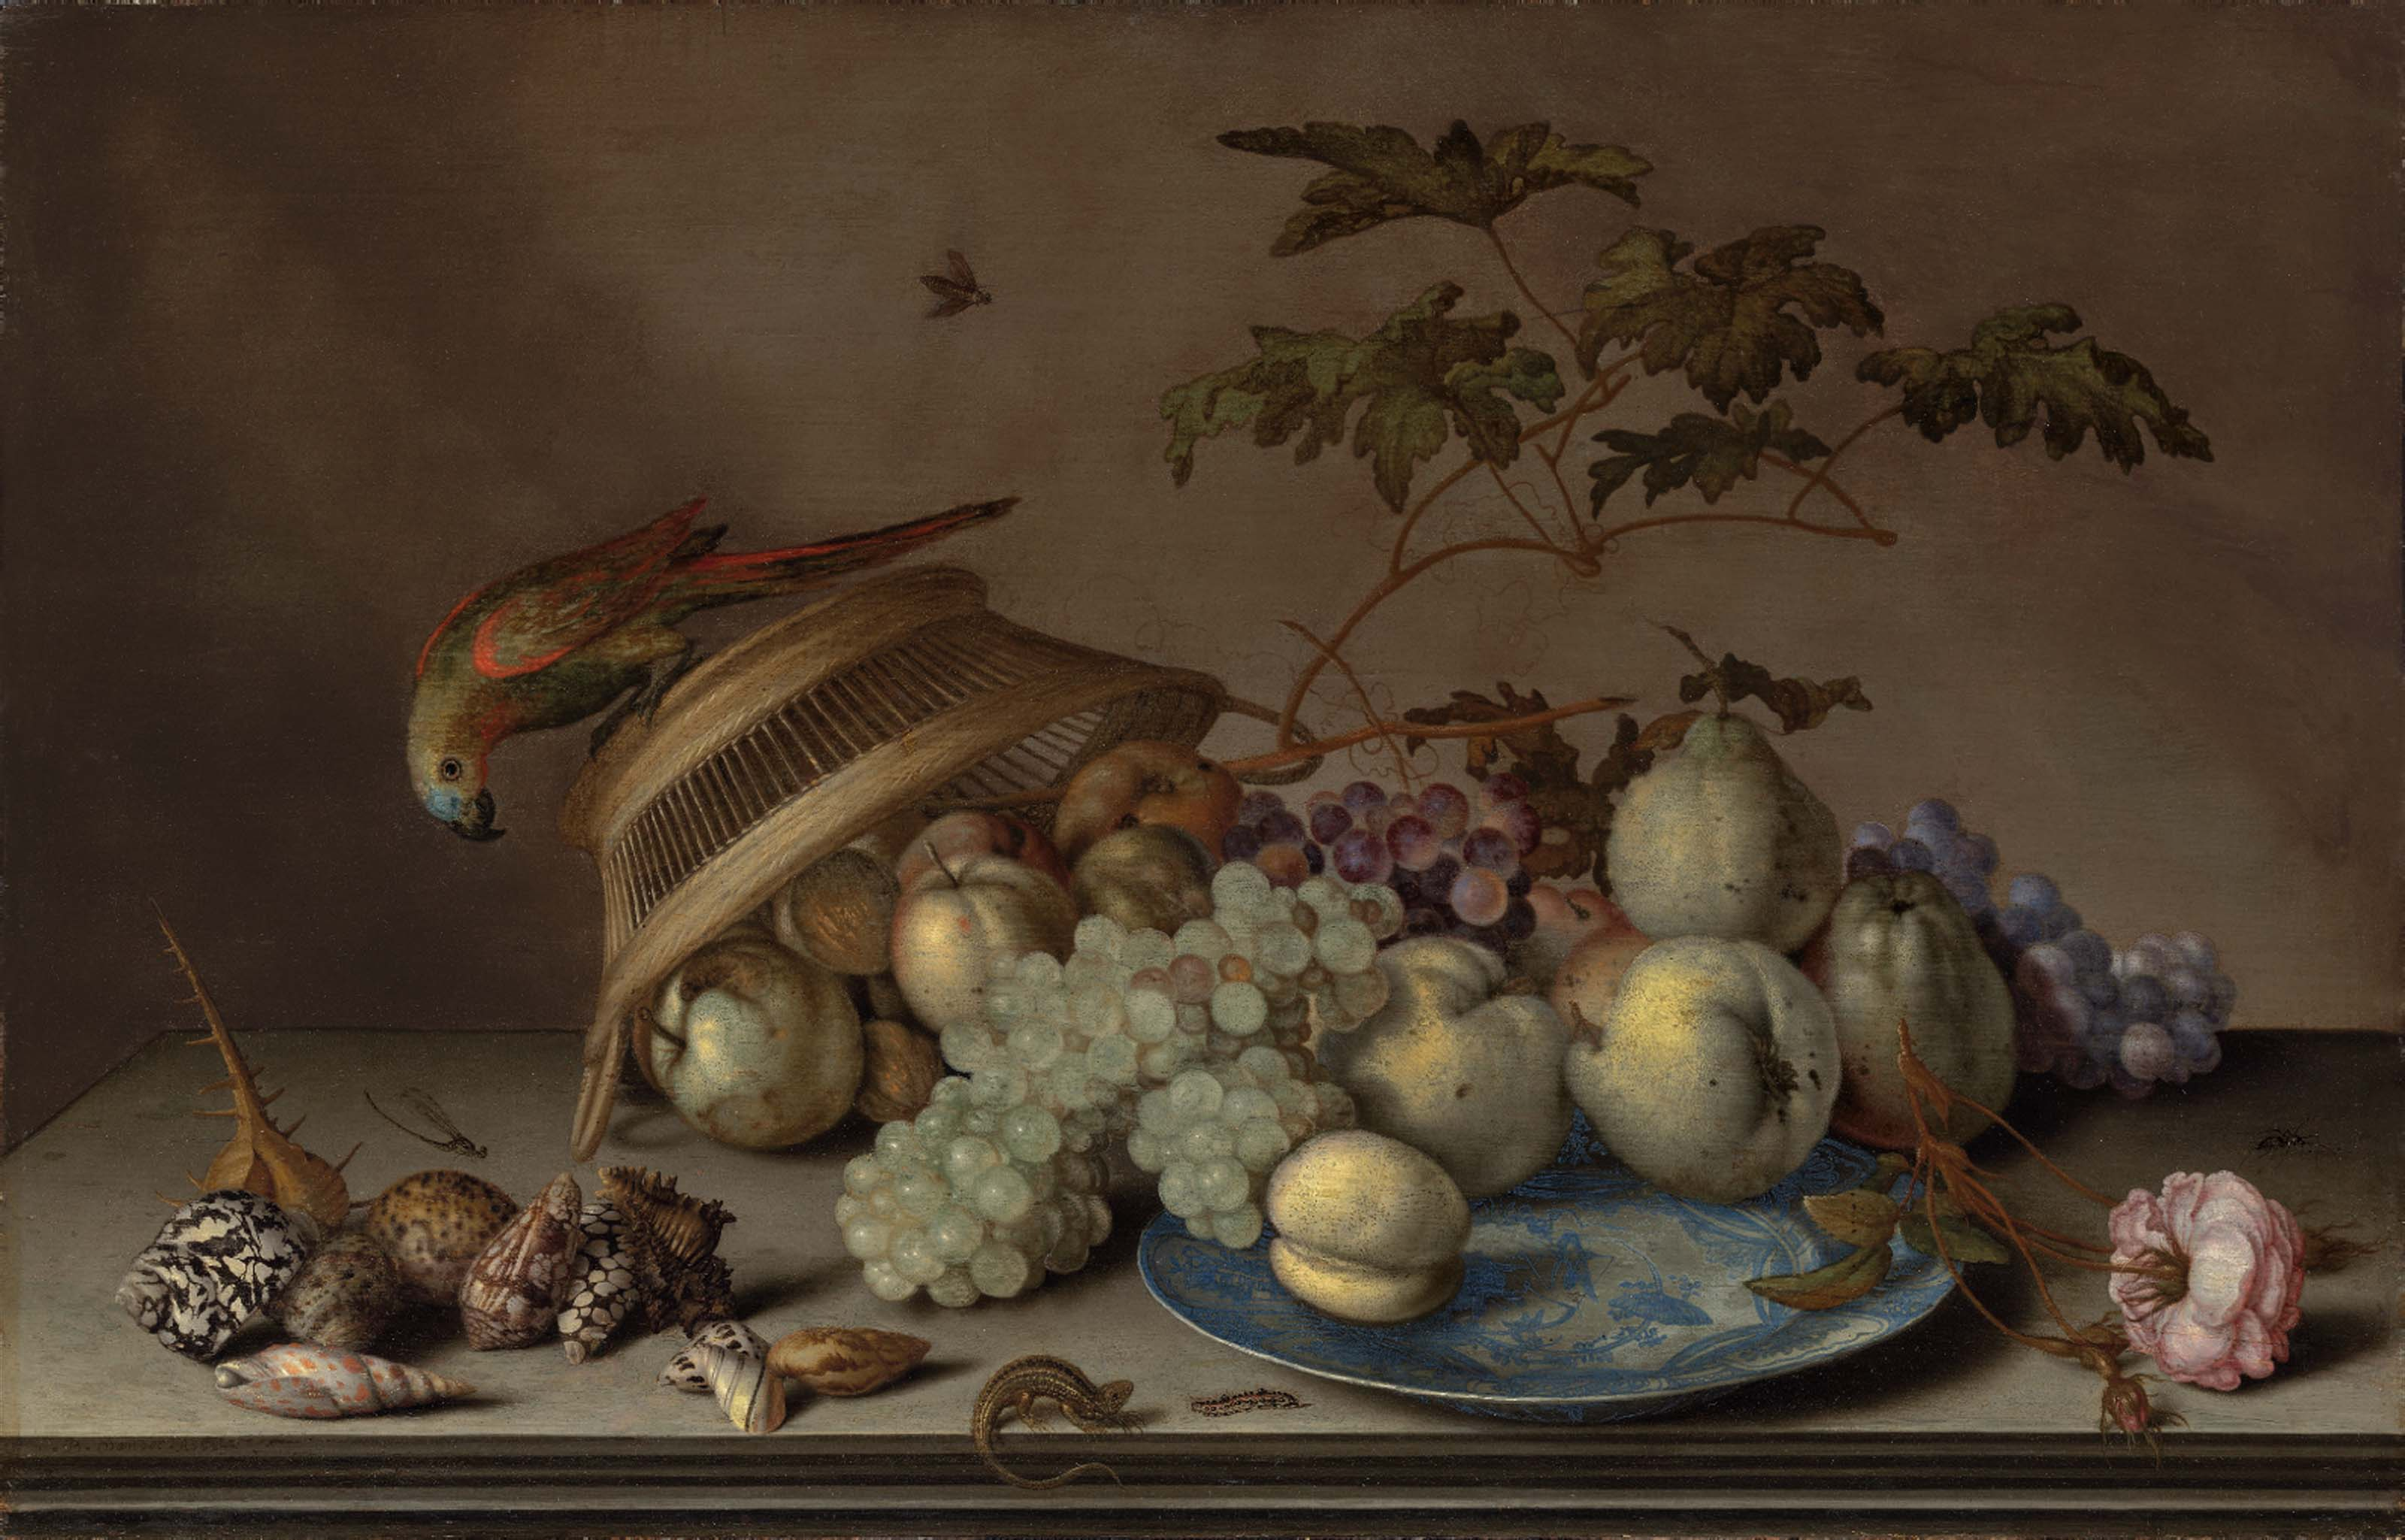 Pears, grapes and a peach on a porcelain platter, with apples, a rose, shells, a dragonfly, a caterpillar and a lizard on a stone ledge, with a parrot on an upturned woven basket